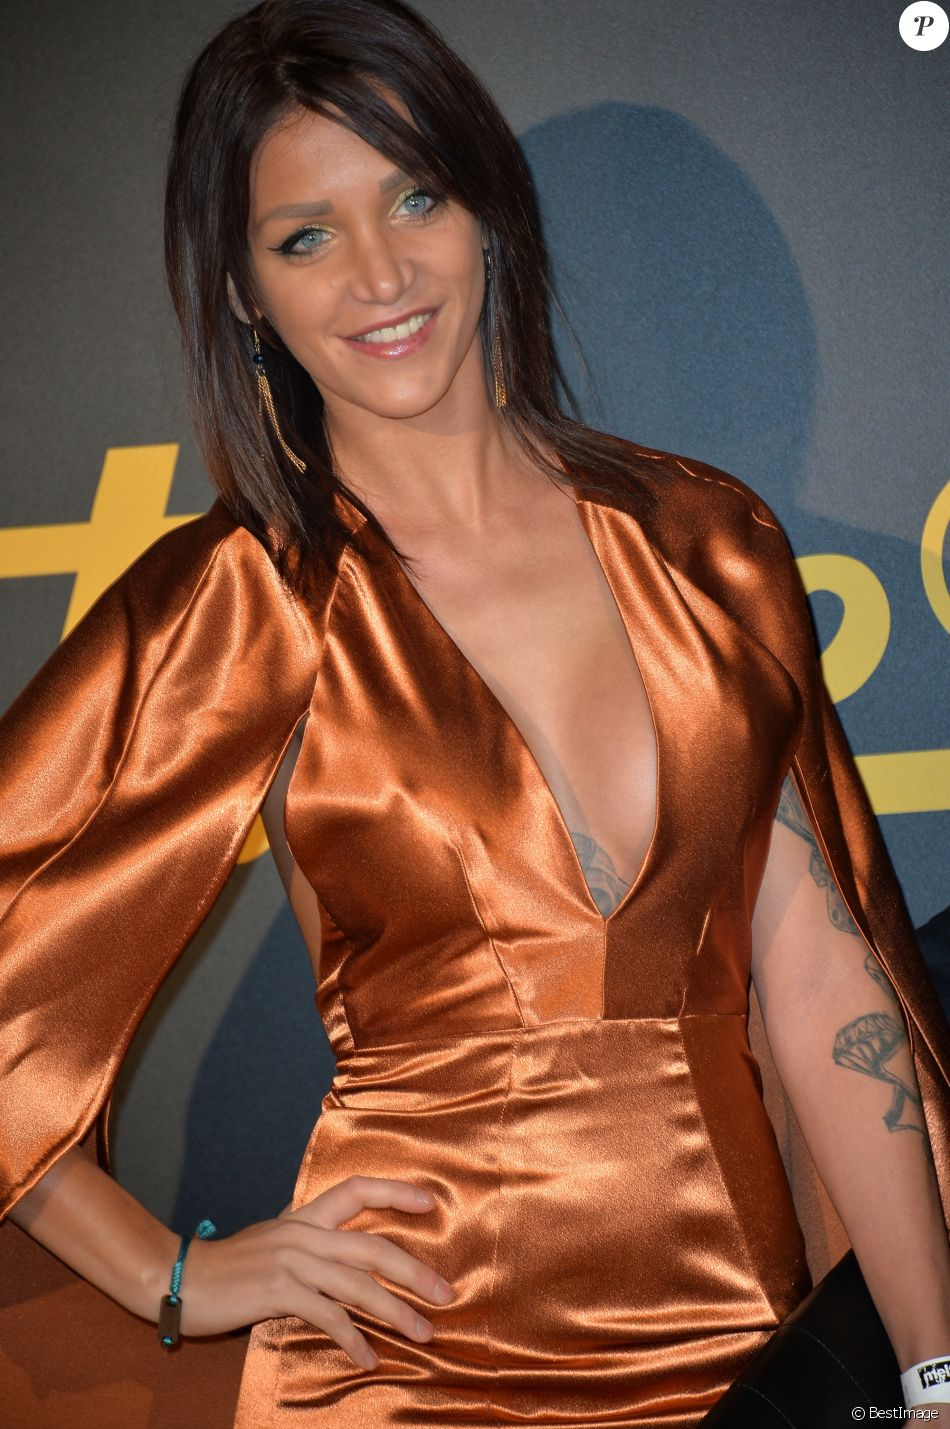 Julia Paredes - Cérémonie des Melty Future Awards 2016 au Grand Rex à Paris, le 16 février 2016.